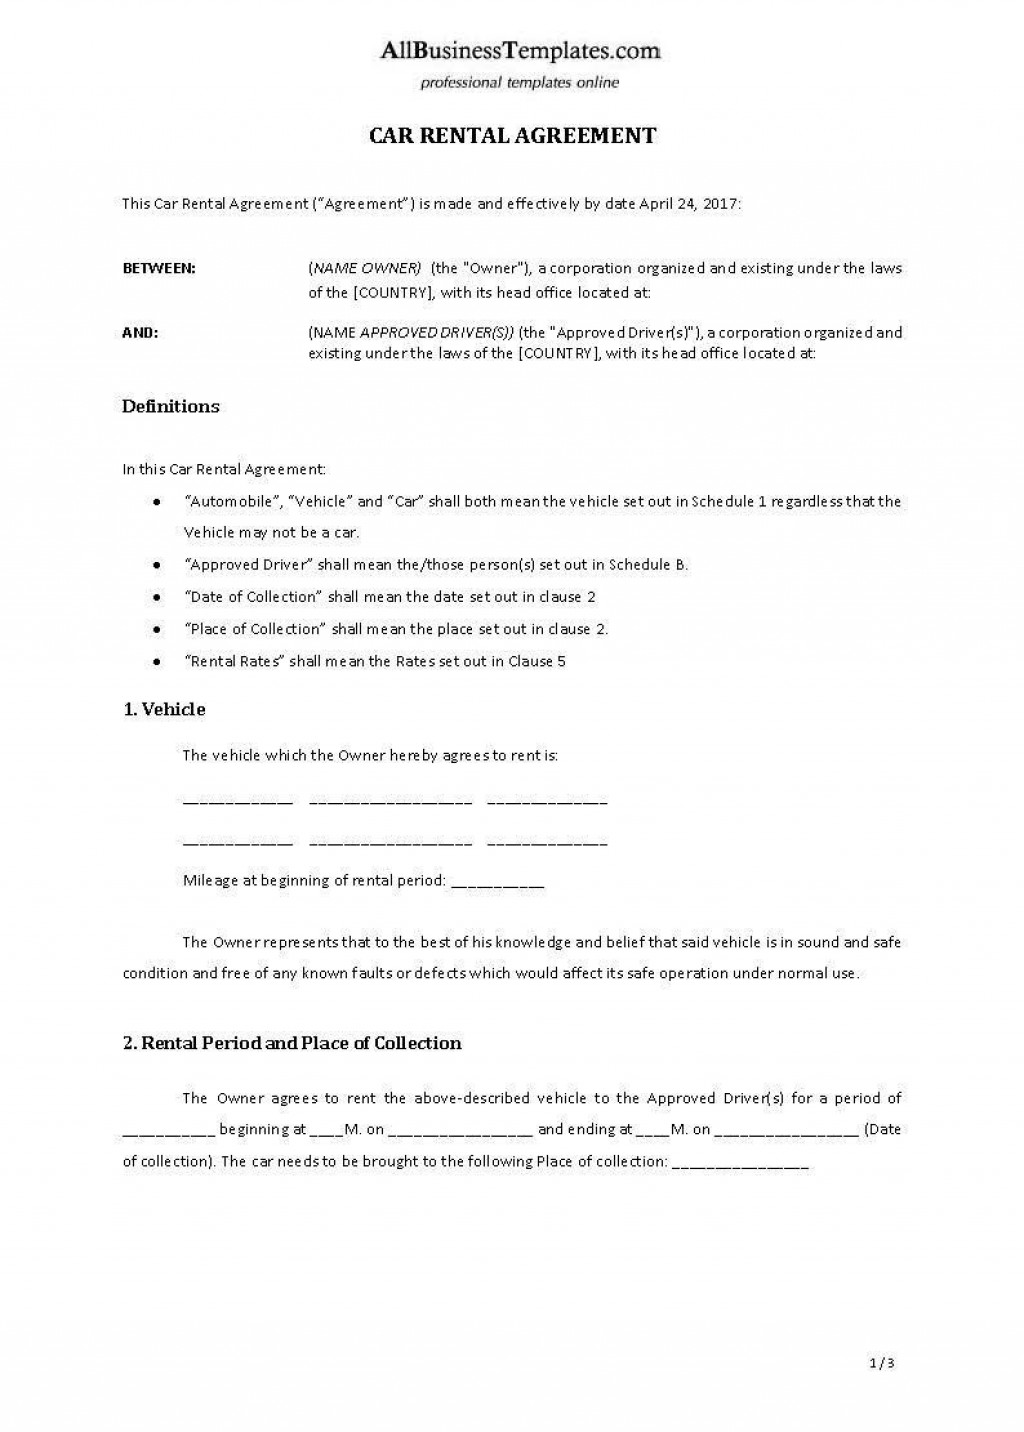 001 Archaicawful Template Vehicle Rental Agreement Highest Clarity  Motor WordLarge